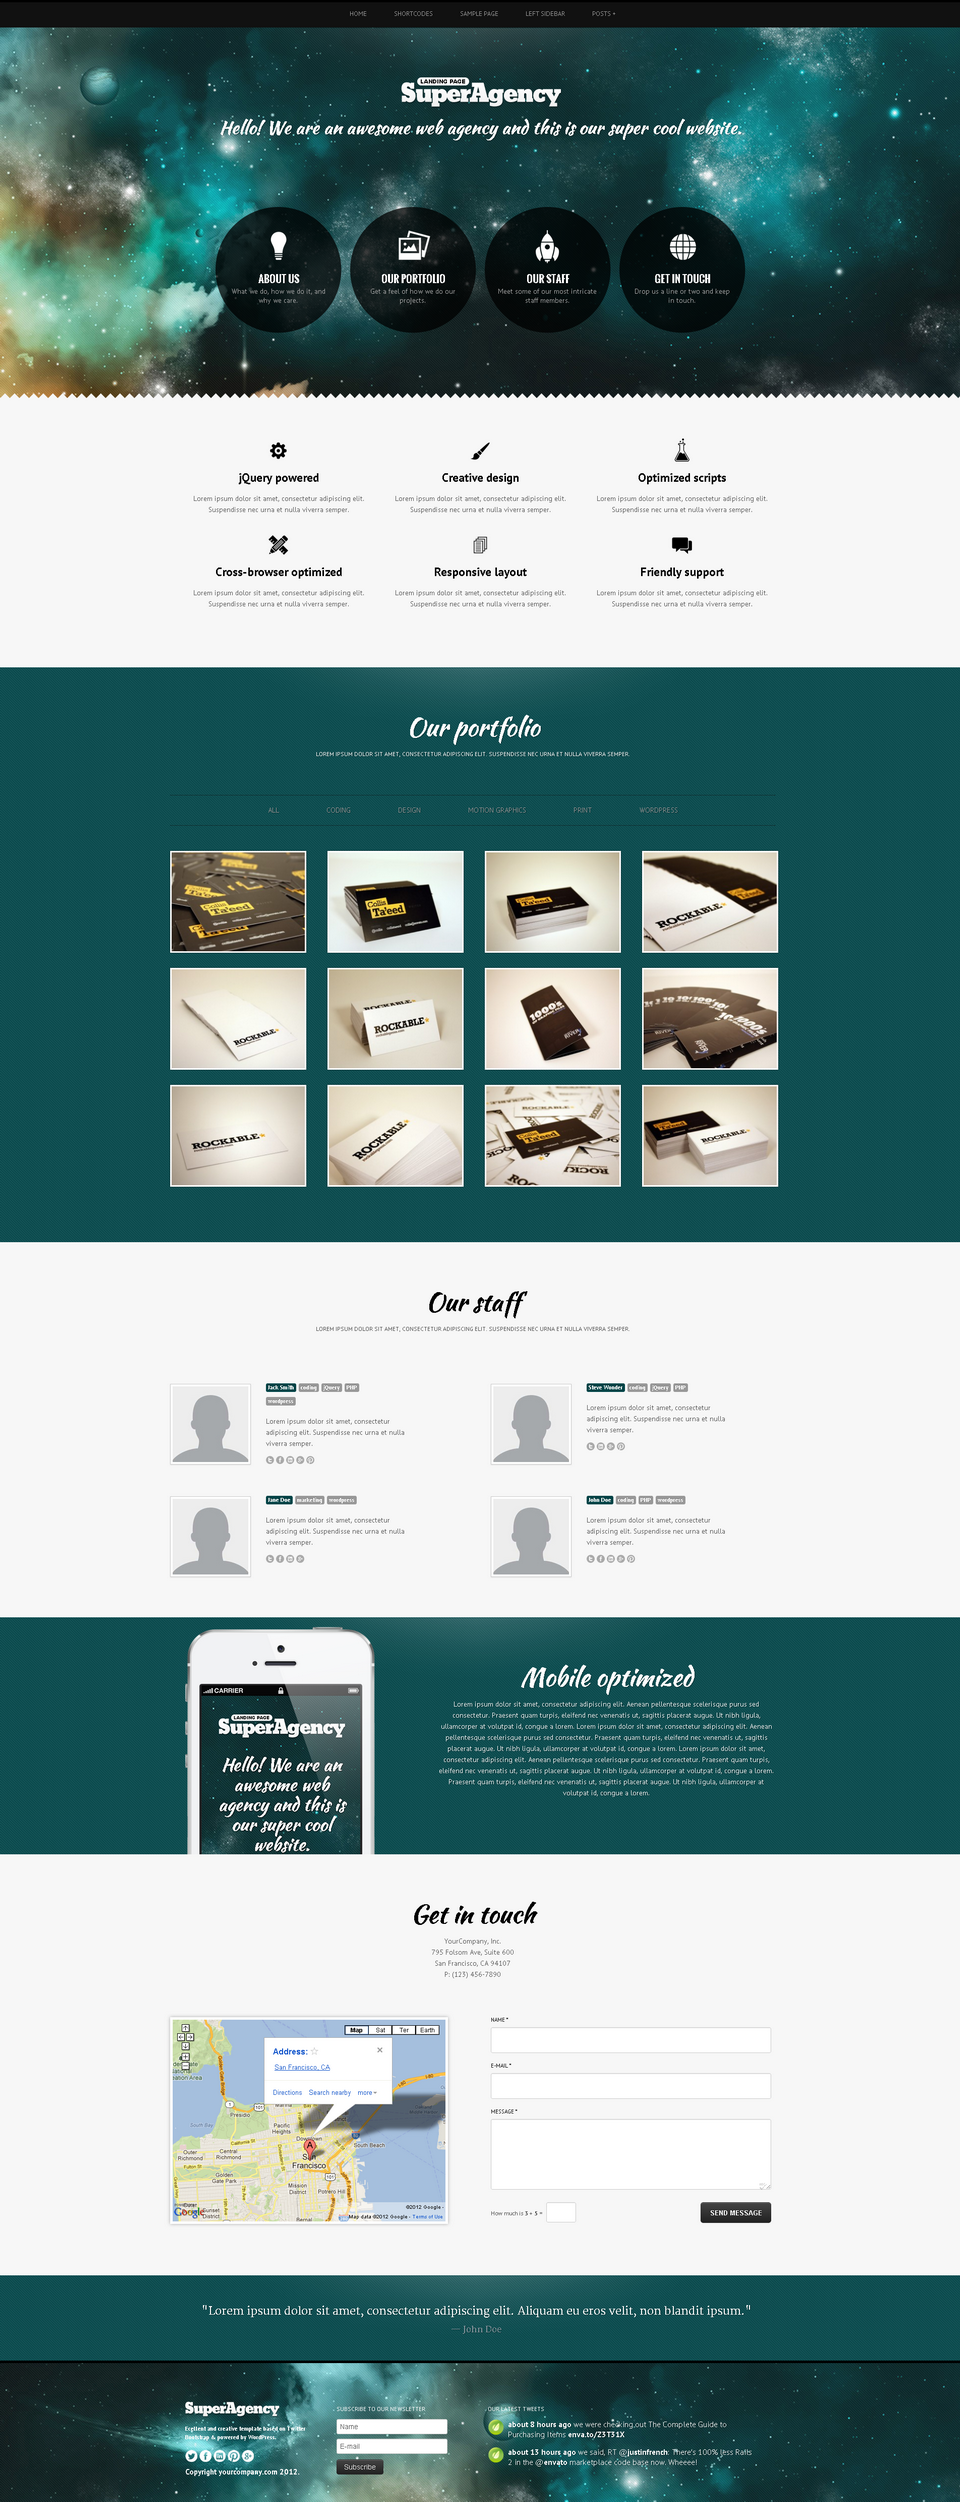 Super Agency - Responsive WordPress Single Page - Super Agency WordPress Theme - galaxy theme with creative header